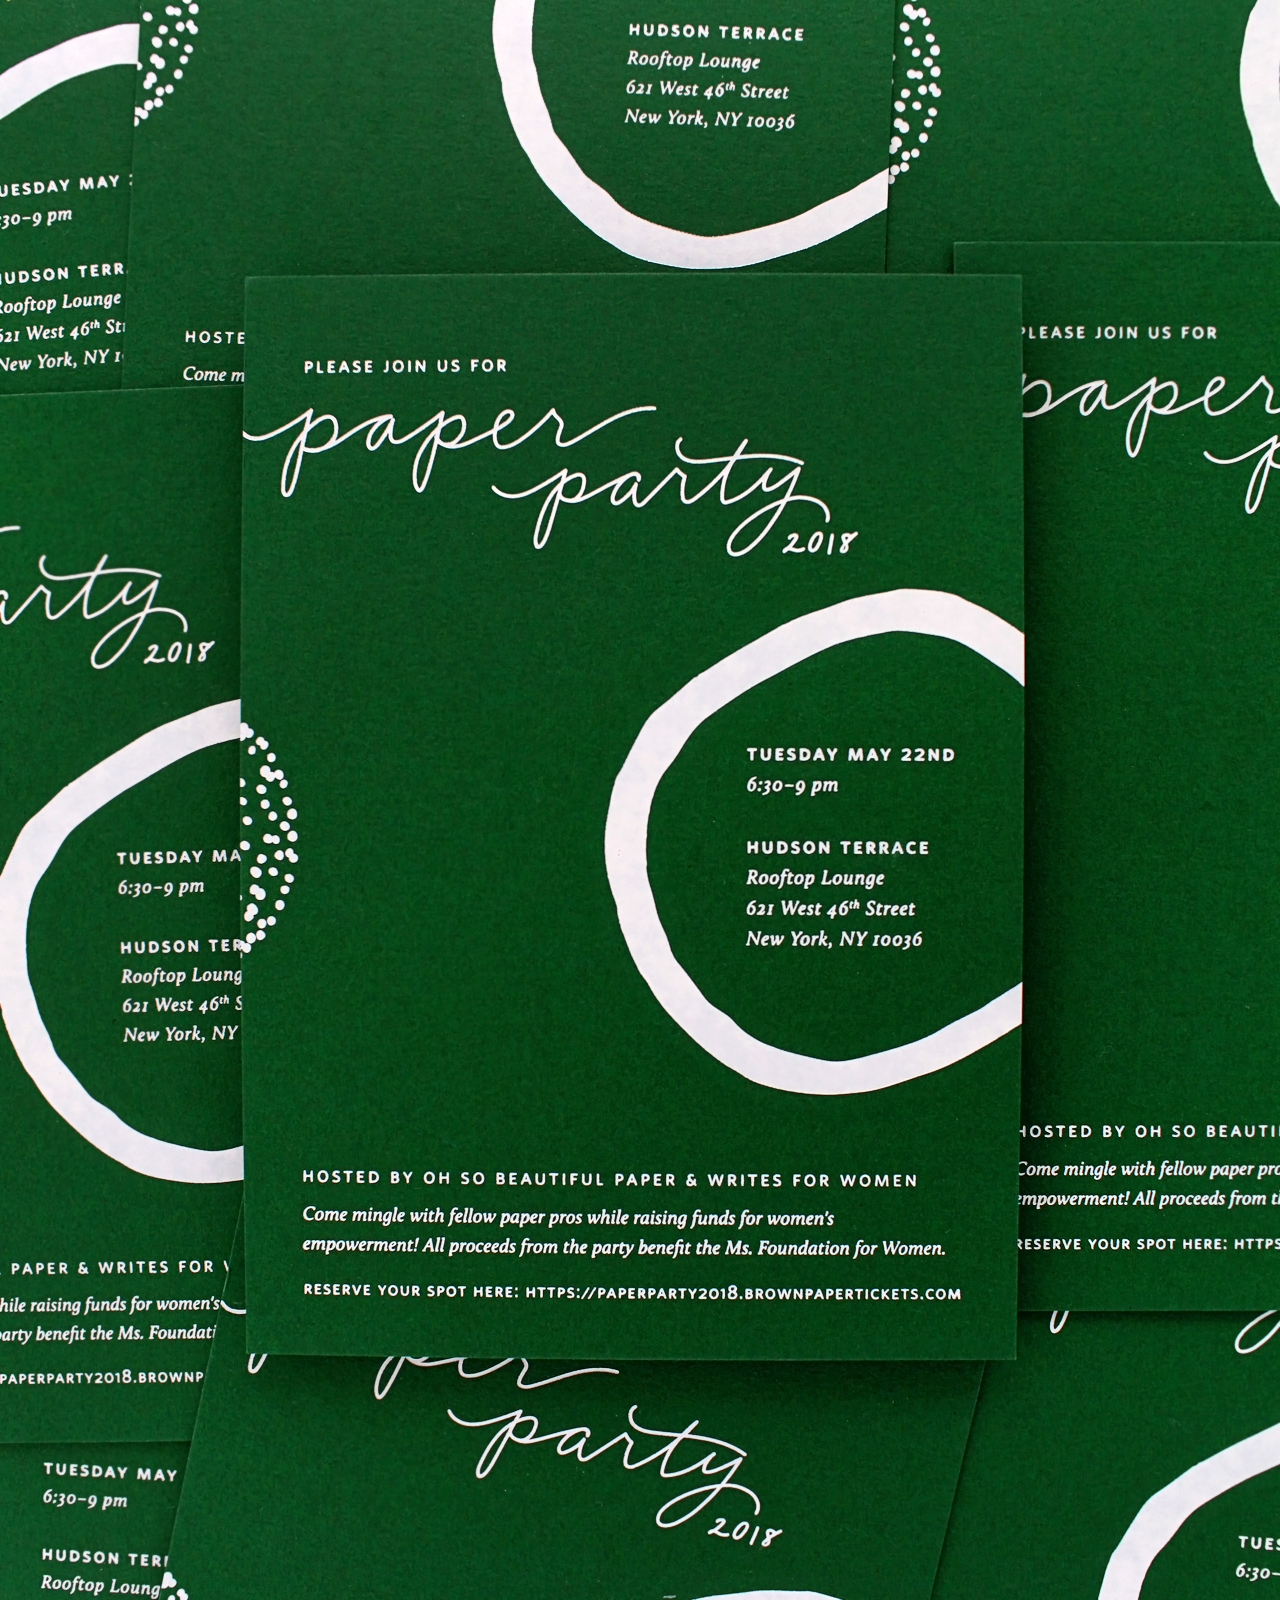 Paper Party 2018 Modern Minimalist Invitations with Abstract Shapes / Design by Ramona & Ruth / Printed by Bella Figura on Legion Paper Colorplan Forest Green